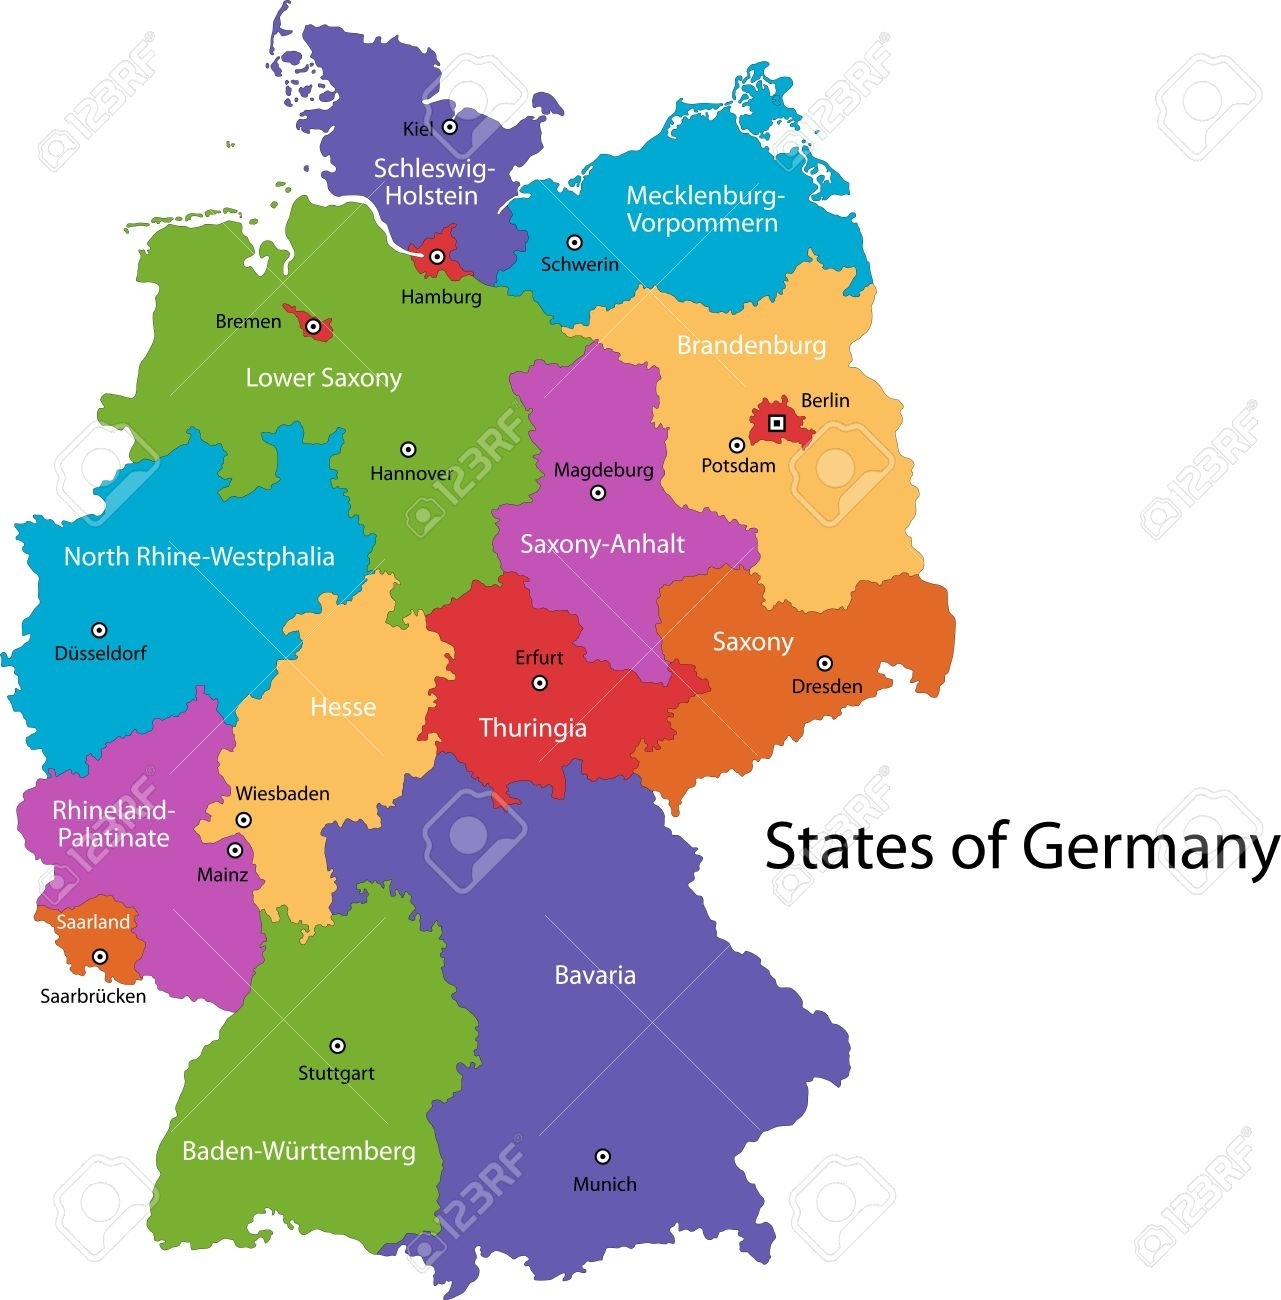 Colorful Germany Map With Regions And Main Cities pertaining to Germany Regions Map